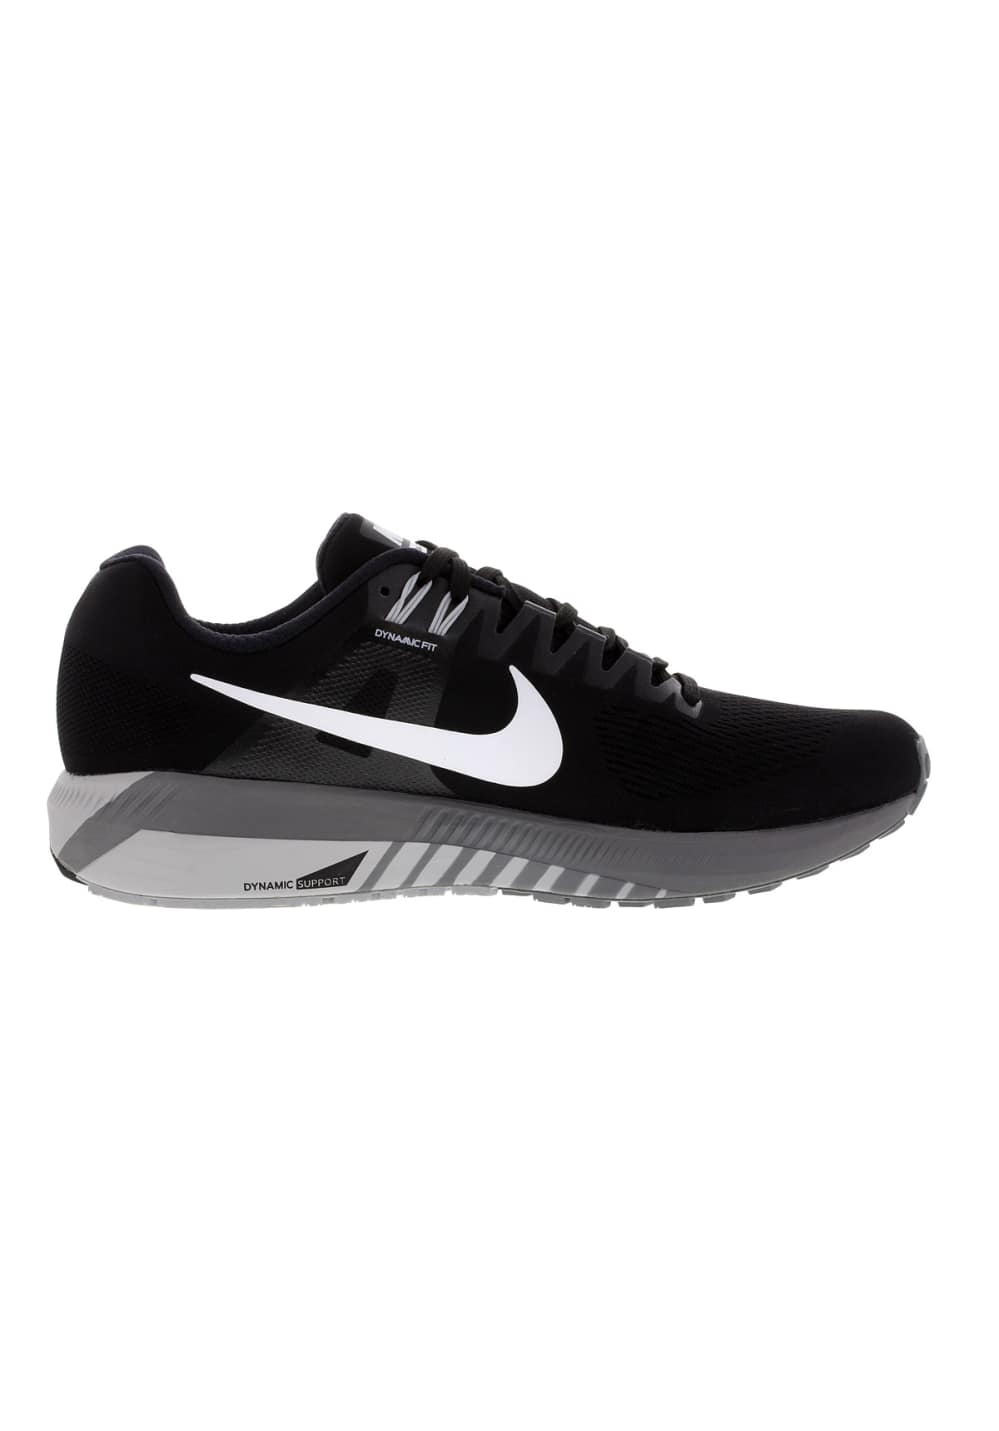 online store 319b6 0e57c Nike Air Zoom Structure 21 - Running shoes for Men - Black